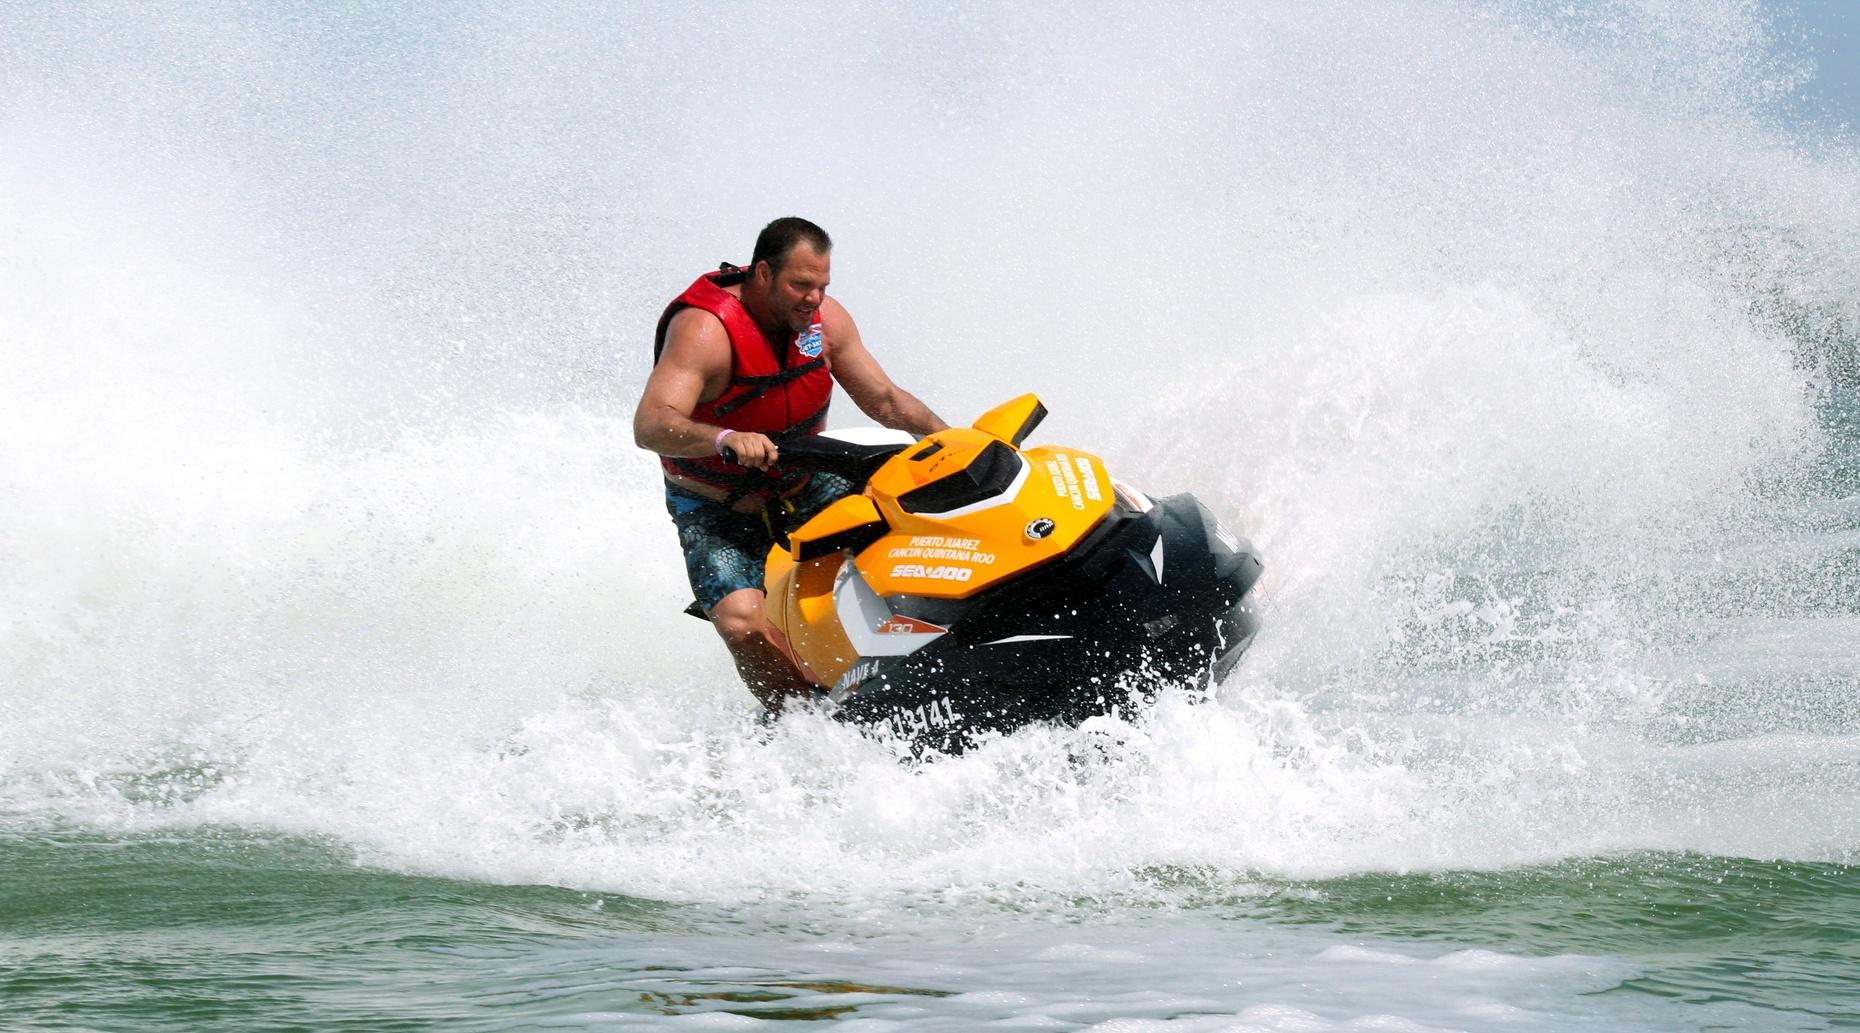 Cancun Jet Ski rental (60 minutes)